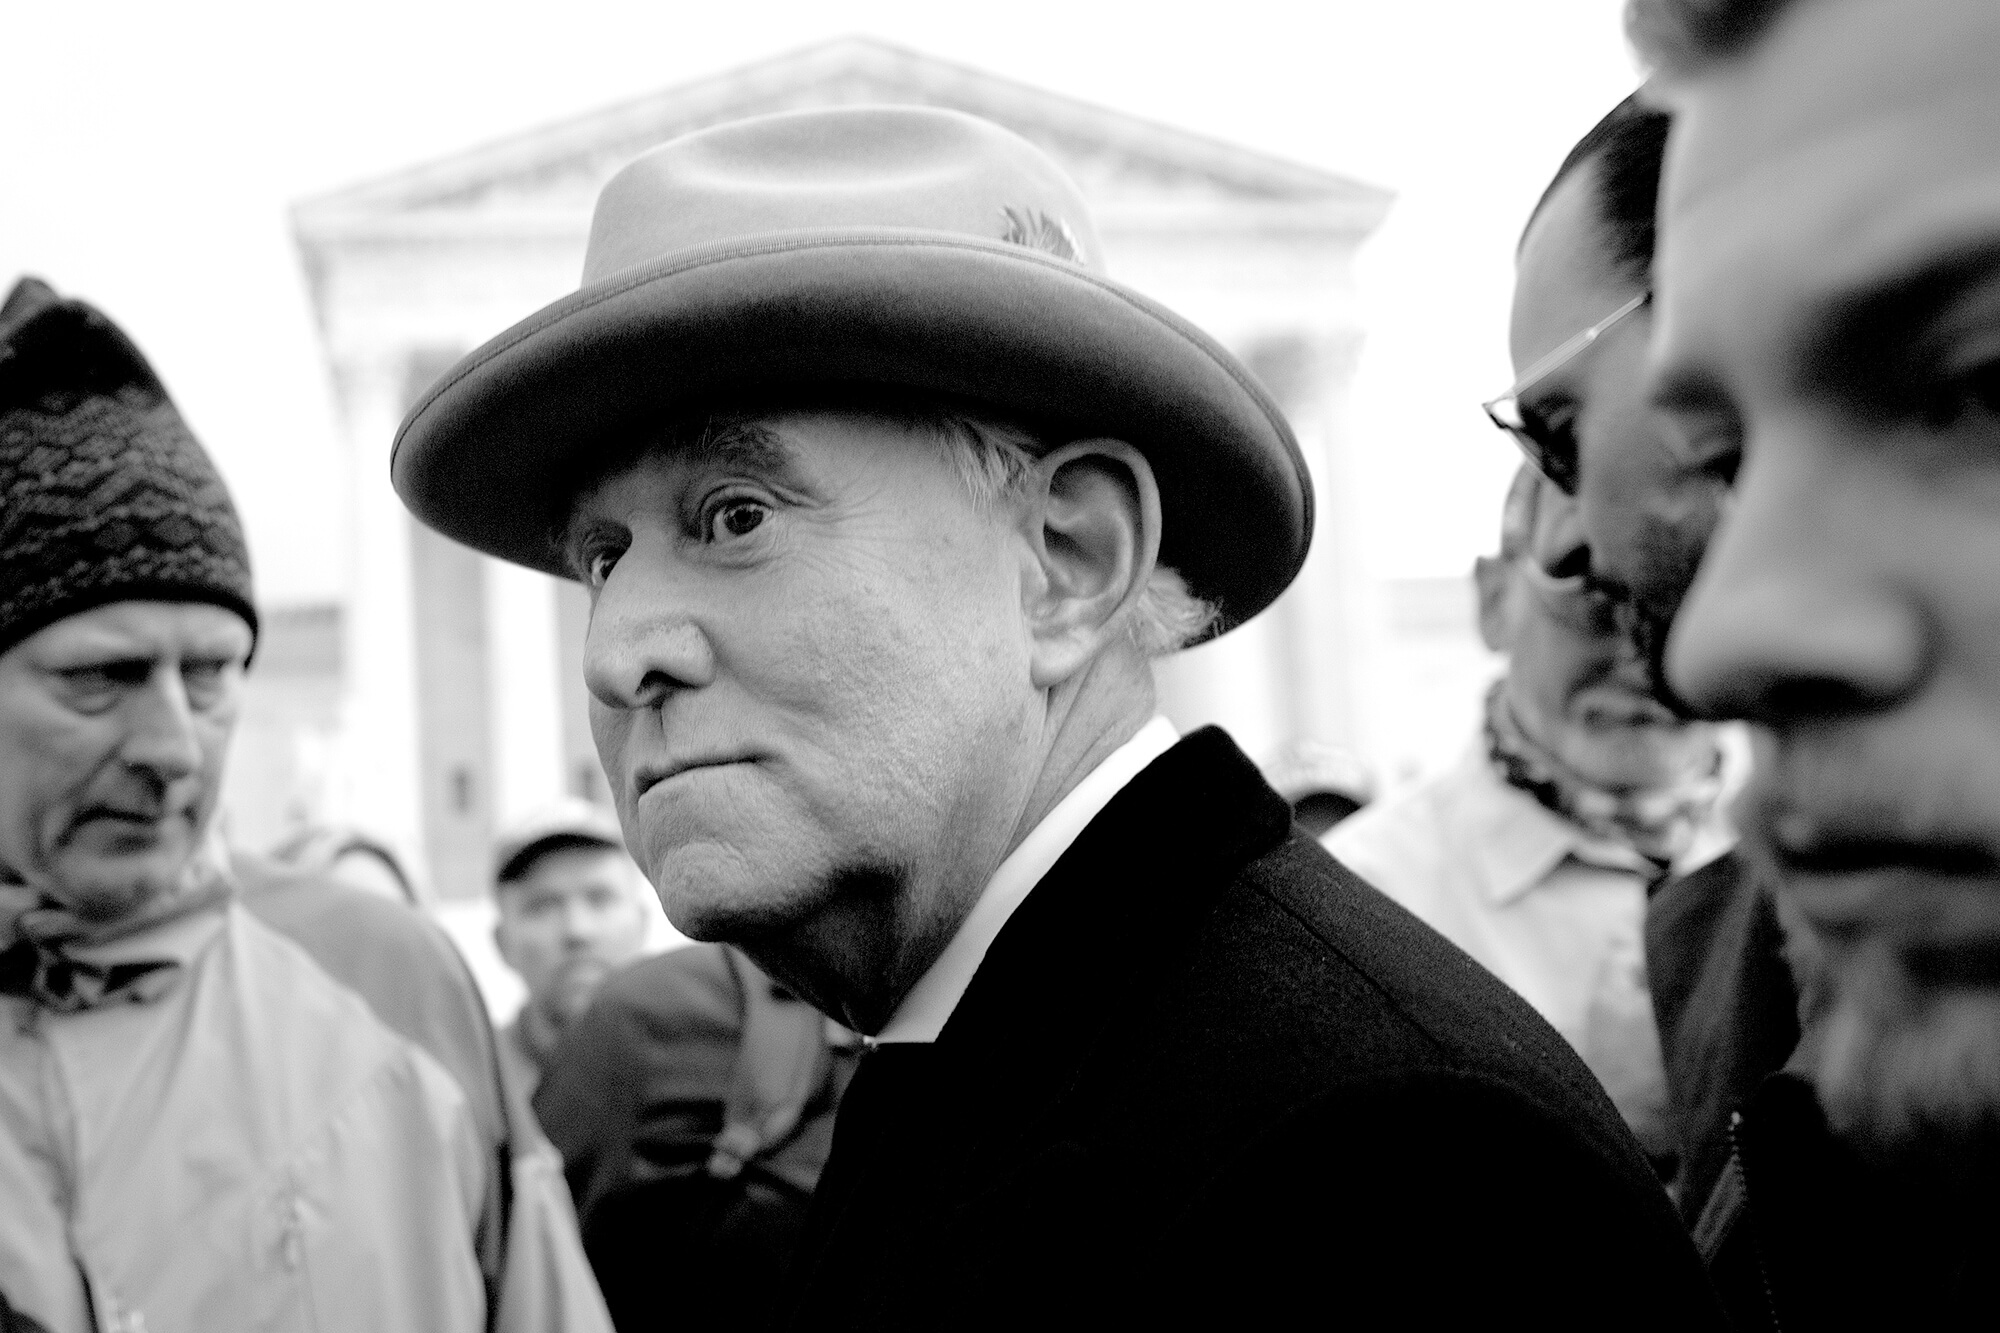 The president's pardon power is intended to be a tool of forgiveness to correct for an overly punitive justice system, not a tool to reward criminals who do the president's bidding. But Donald Trump pardoned Roger Stone in December 2020, after he was convicted of seven felonies including lying under oath. Current laws and norms do too little to stop a president from using their power this way.